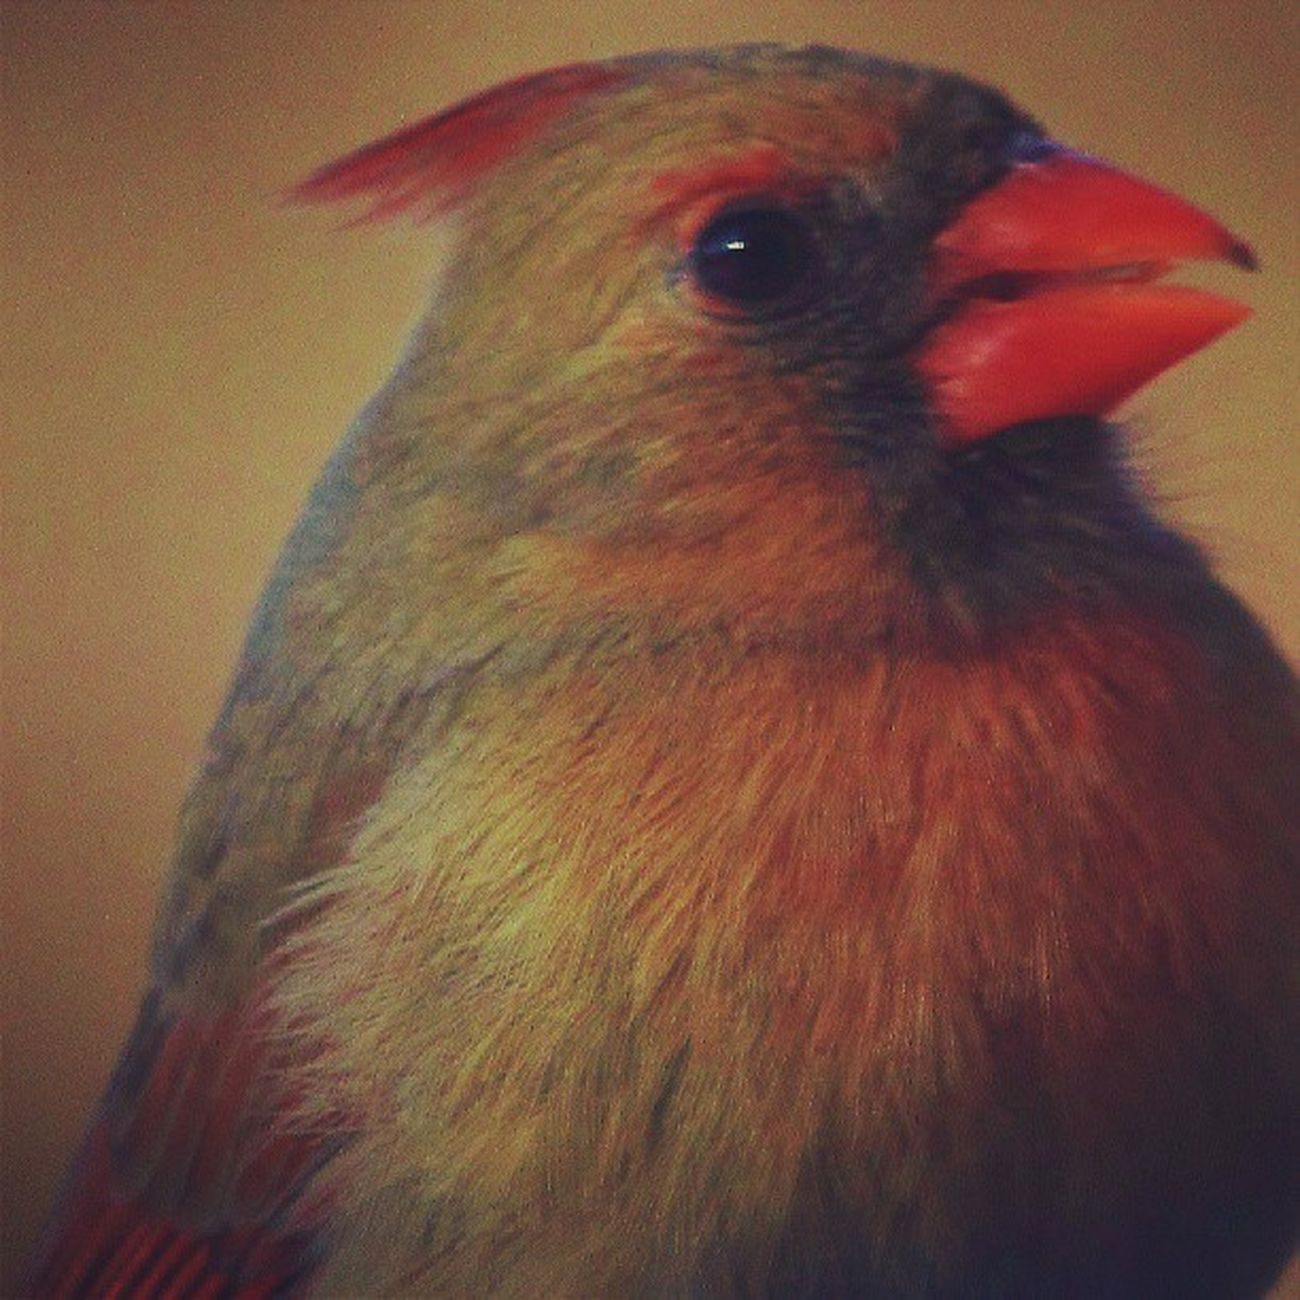 Female cardinal Animazing_birds Amazing_birds Allmightybirds Birds_n_branches birdfreaks feather_perfection feather_features fabfaunas nature_perfection nuts_about_birds underdogs_feathers whatschirping wildlife_perfection